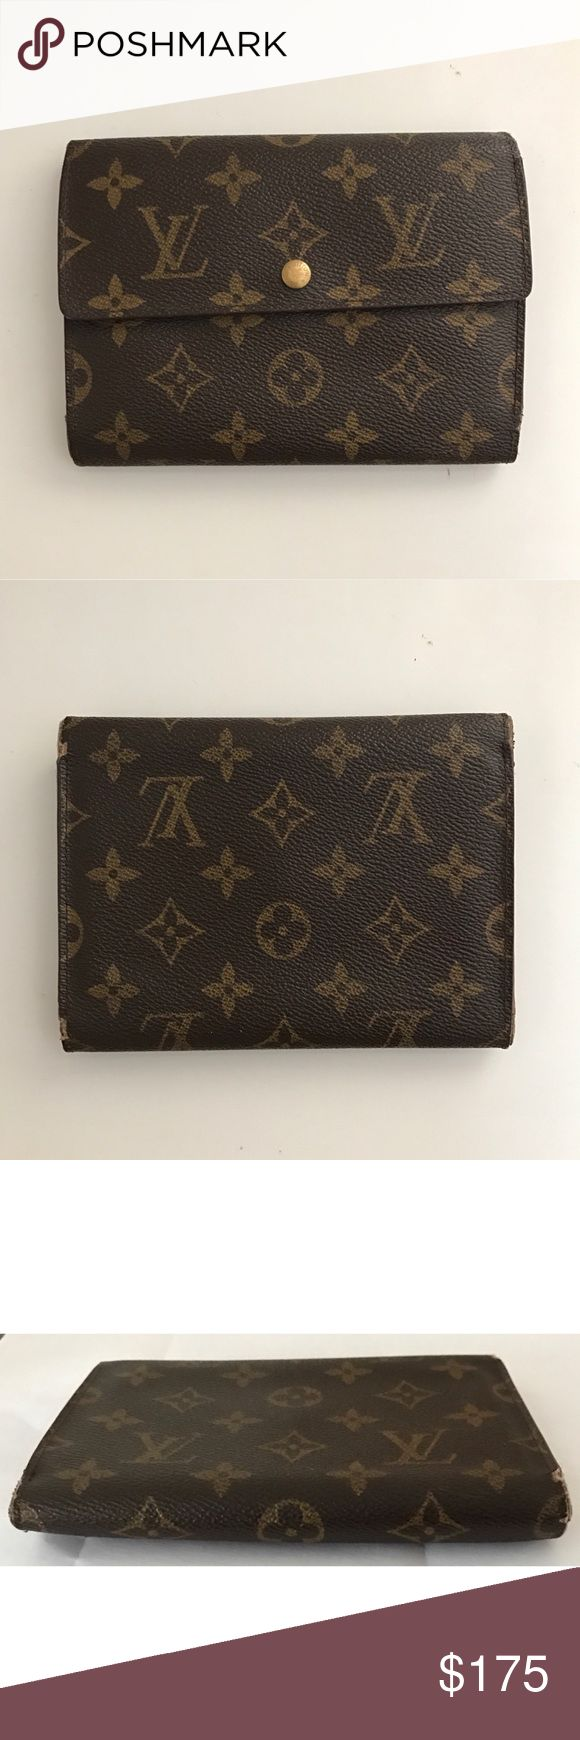 """💯Authentic Louis Vuitton Trifold Monogram Wallet Authentic Louis Vuitton Monogram Porte Tresor Etui Papiers trifold wallet. Has 6 card slots, 1 bill fold, 1 coin compartment, 2 flat pockets. Size H 4.5"""" x L 6.2"""" x W 0.5"""", date code SP0986, made in France. Has normal signs of use with minor dirt marks, scuffs on edges, loose threads, some interior slots have minor peeling. Wallet still in good condition and fully functional. View all pictures closely for signs of use. Retail $700. NO TRADES…"""